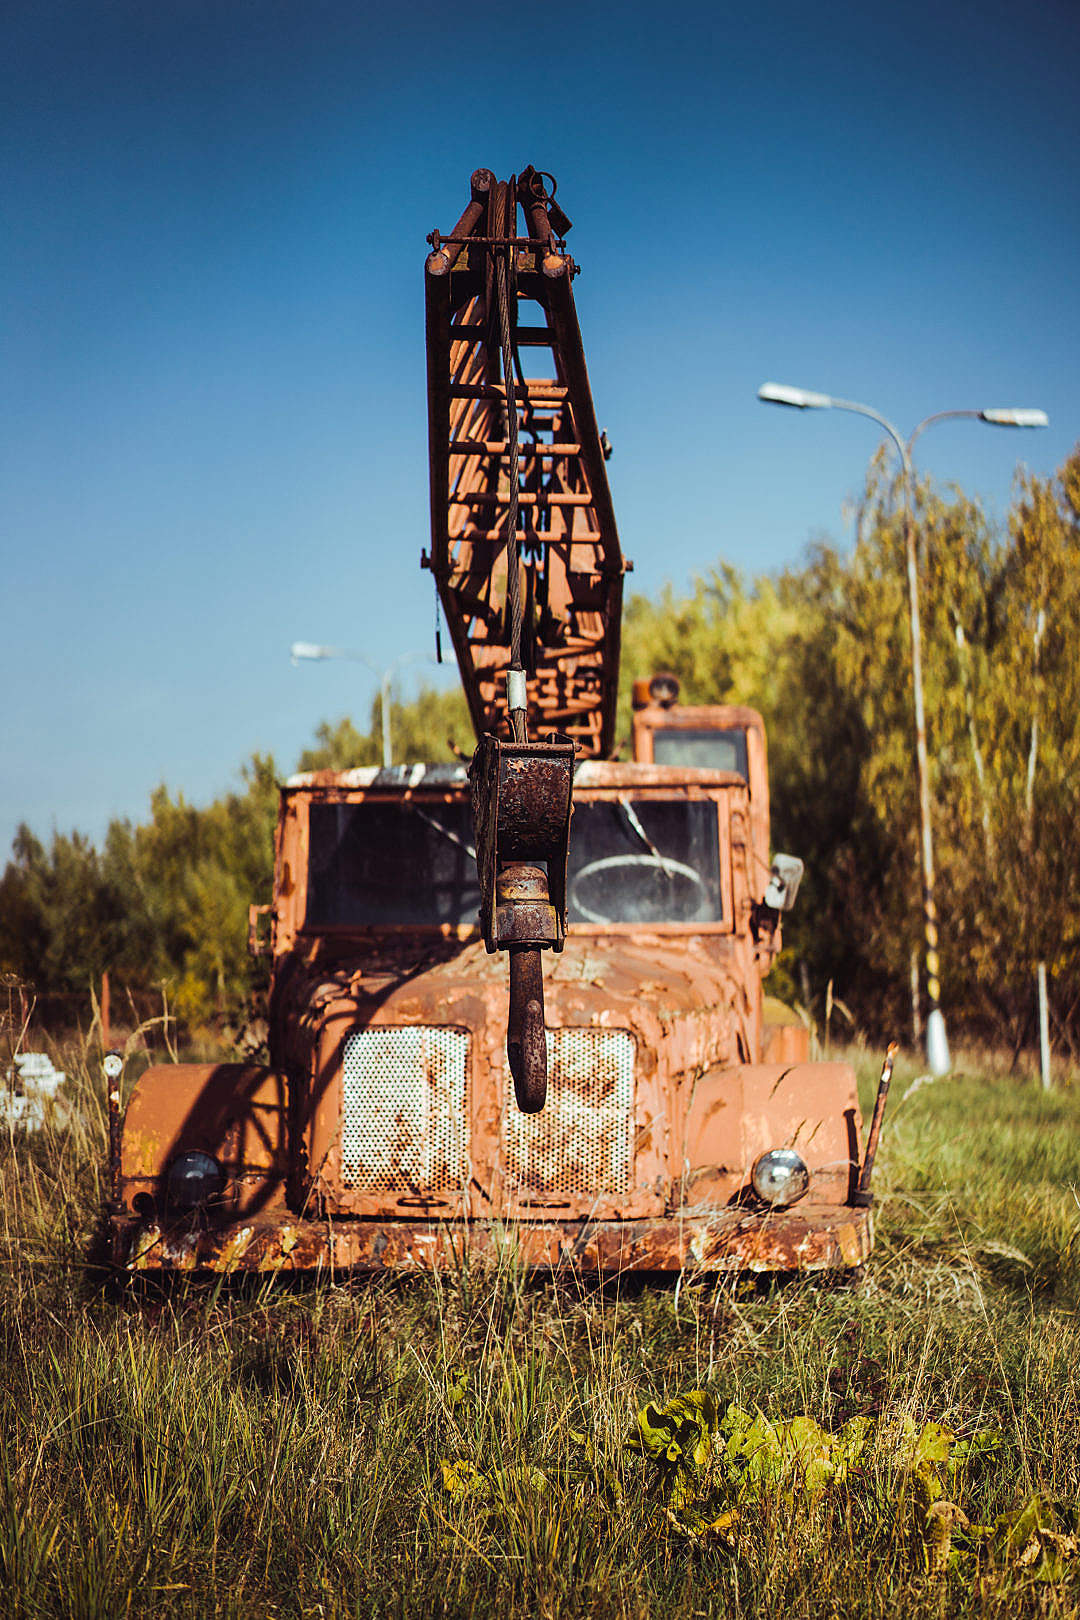 Download Rusty & Abandoned Crane Truck FREE Stock Photo